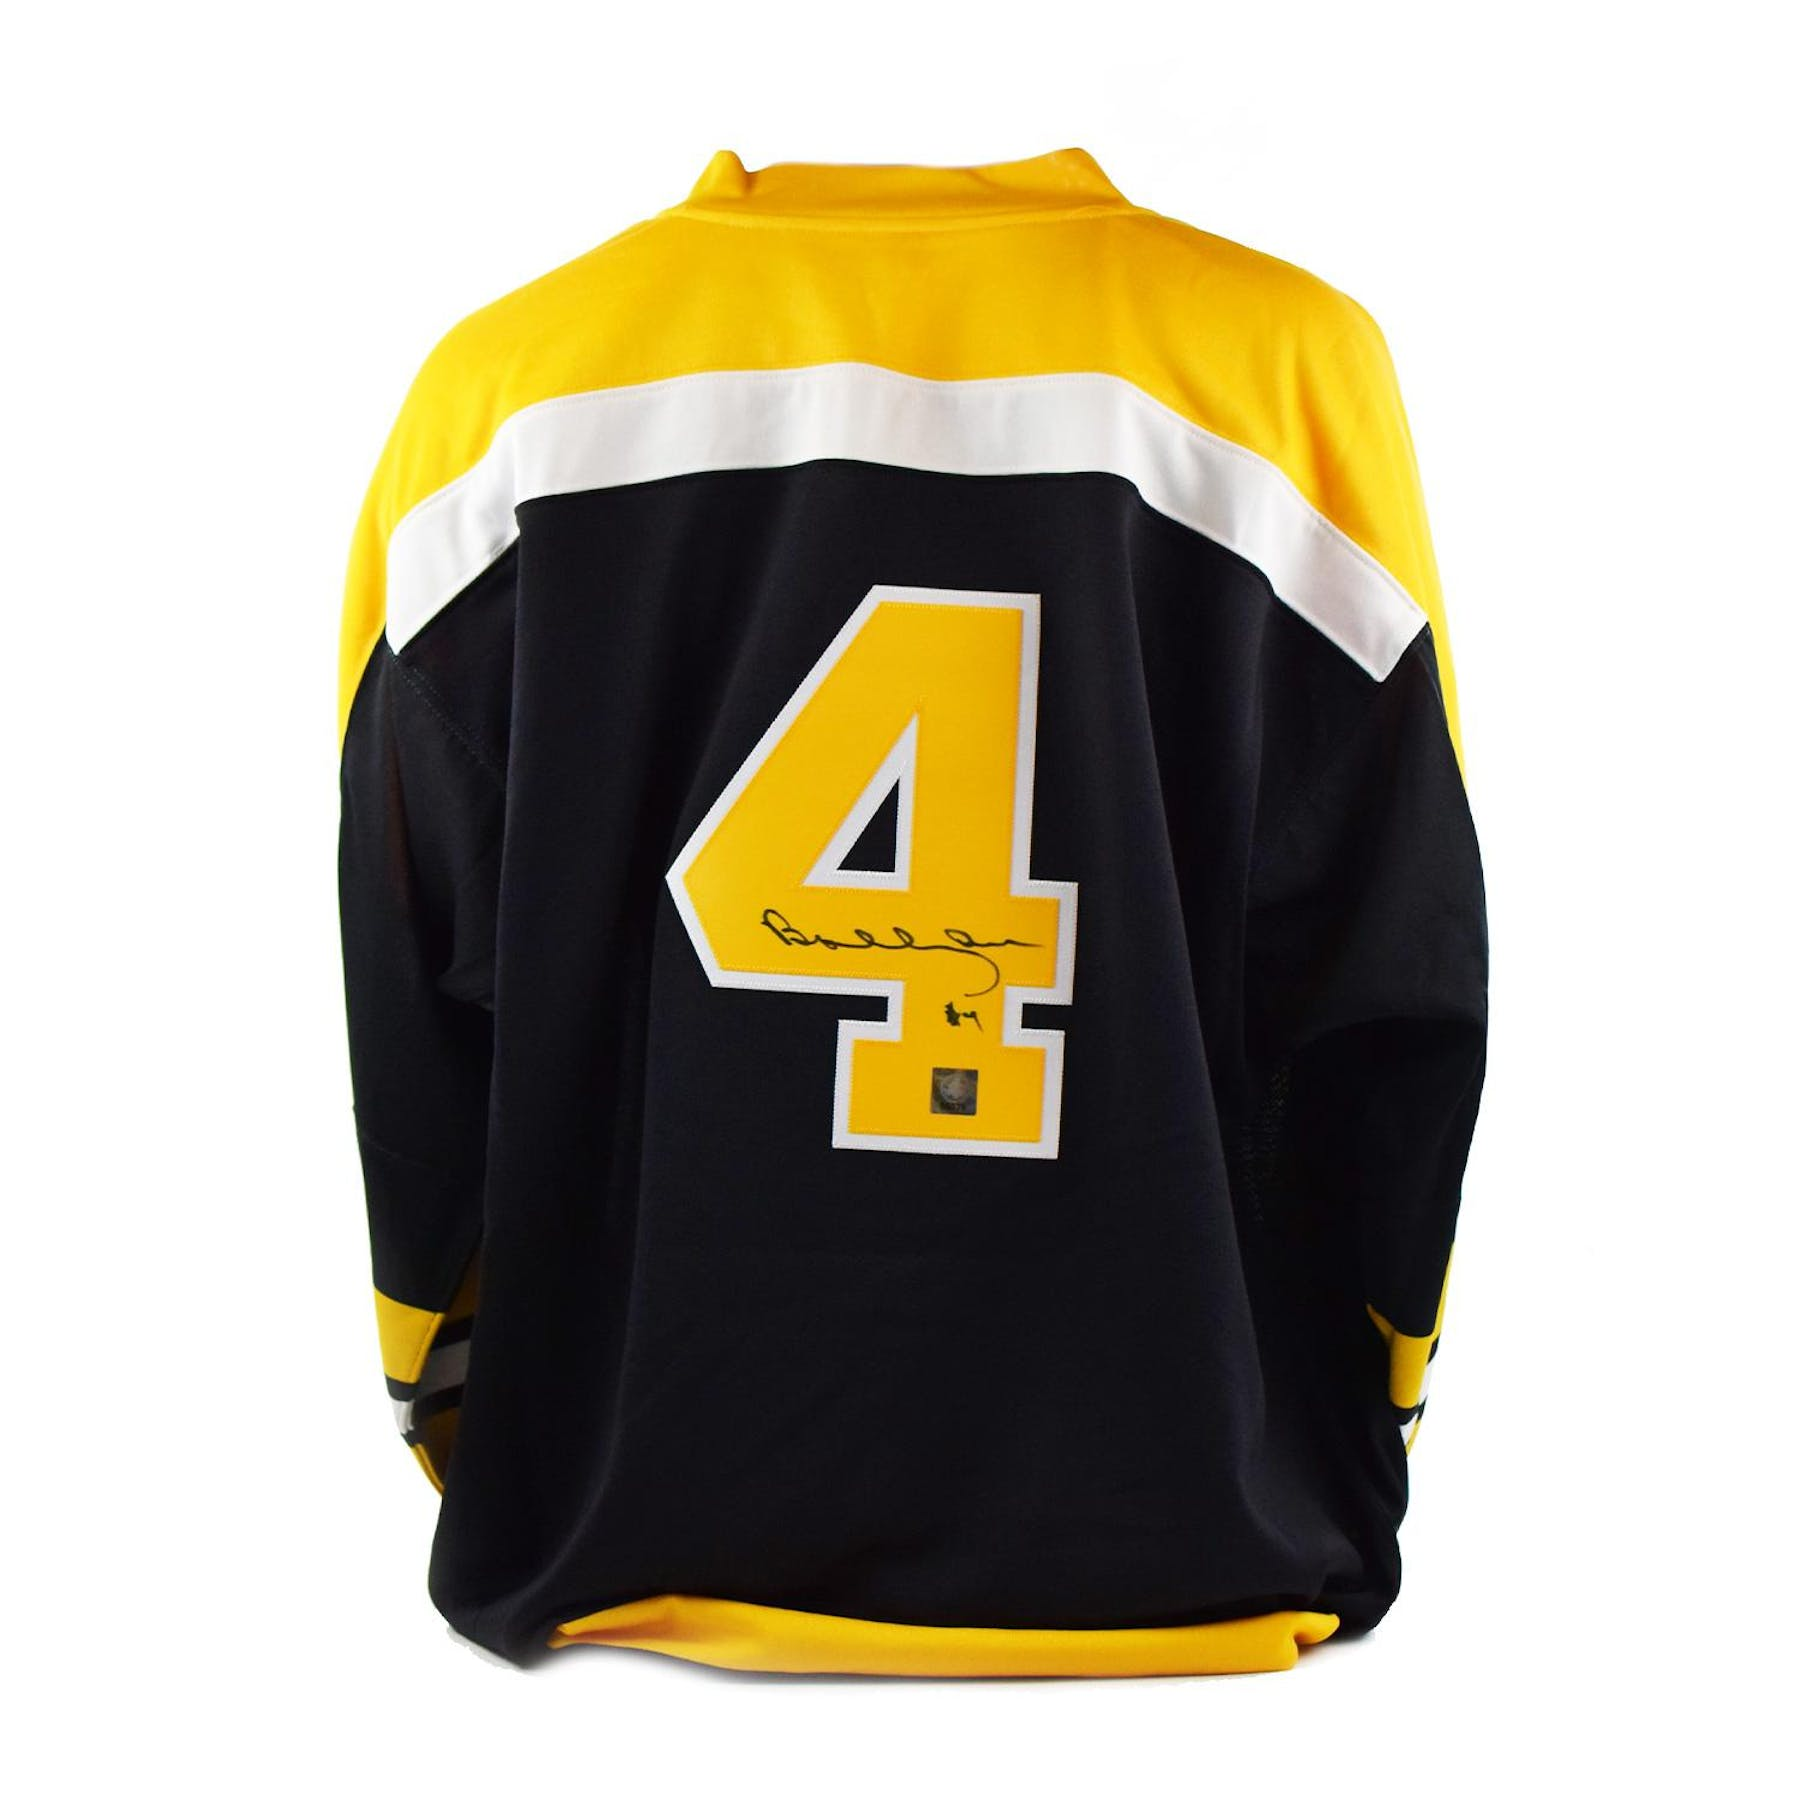 lowest price 54fb1 51509 Bobby Orr Autographed Mitchell & Ness Boston Bruins Jersey (Great North  Road COA)